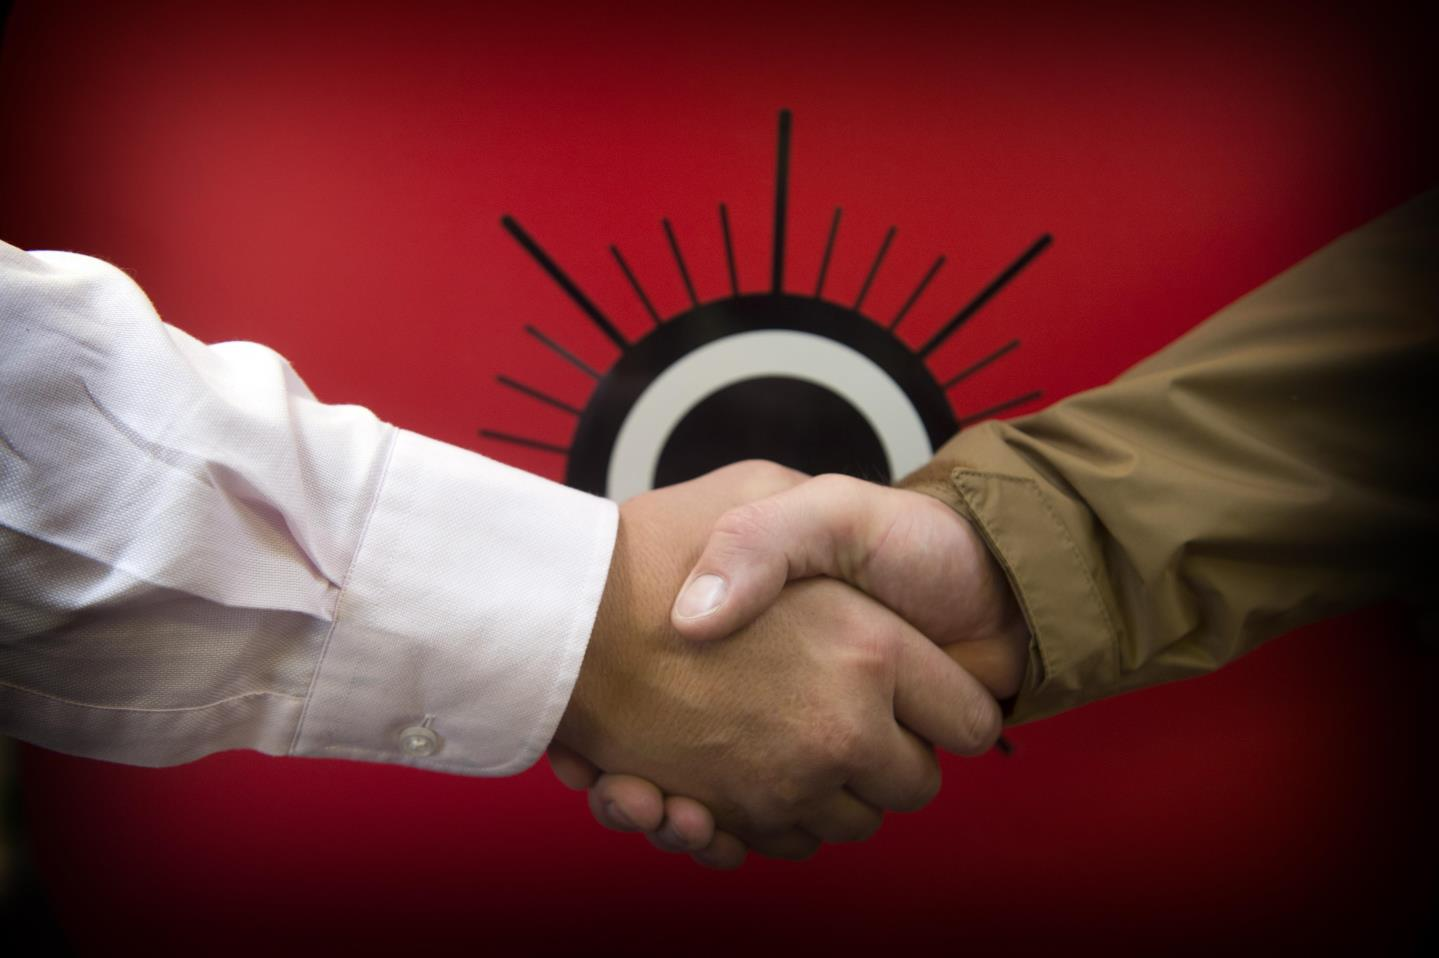 Two people shaking hands in front of the Poppyscotland logo